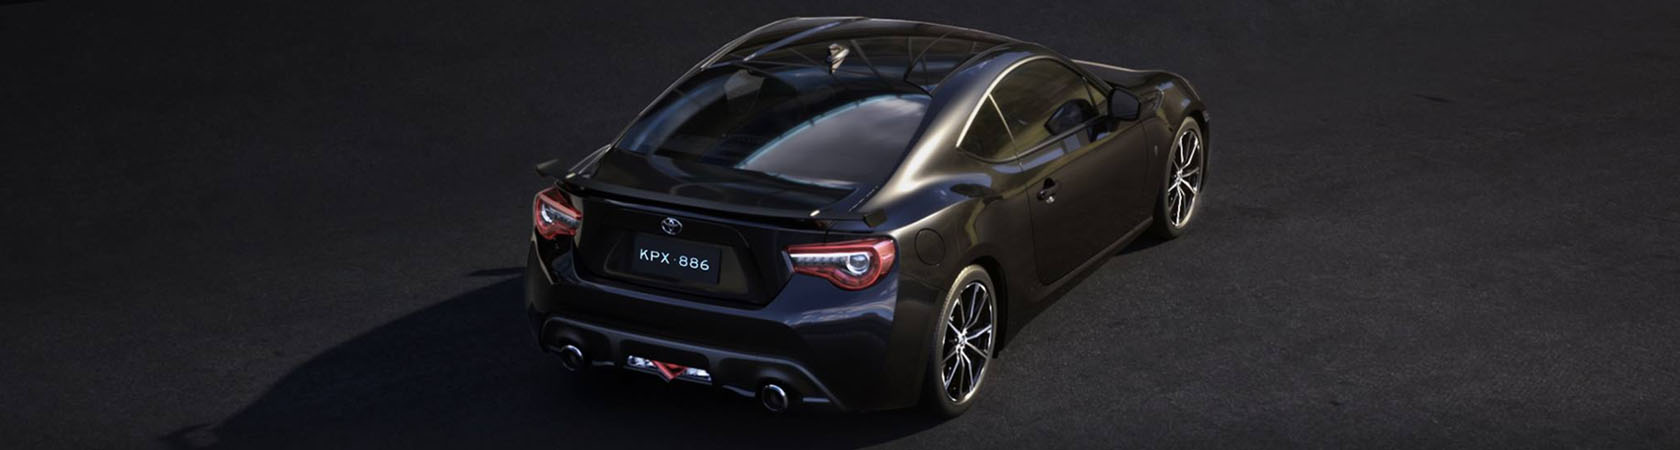 Warrnambool Toyota 86